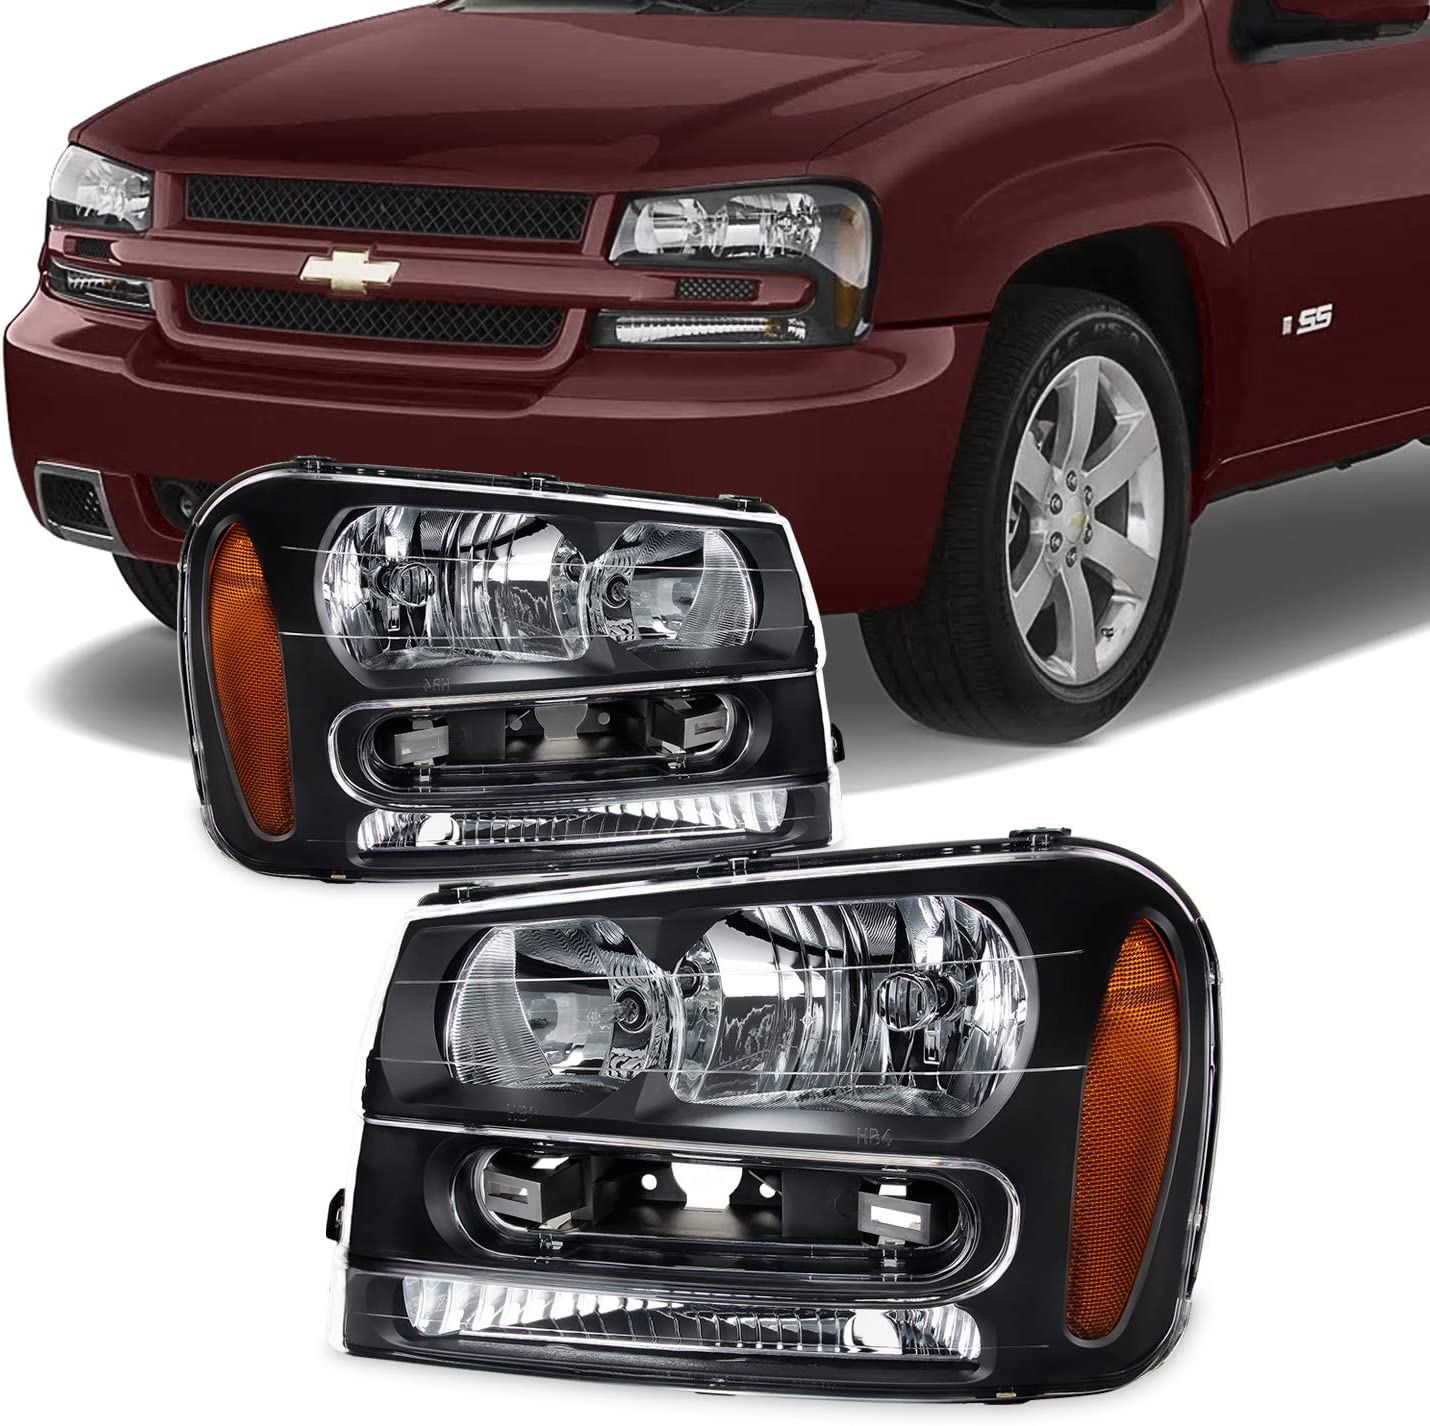 2002-2009 CHEVY TRAILBLAZER CRYSTAL REPLACEMENT STYLE HEADLIGHT LAMP CHROME